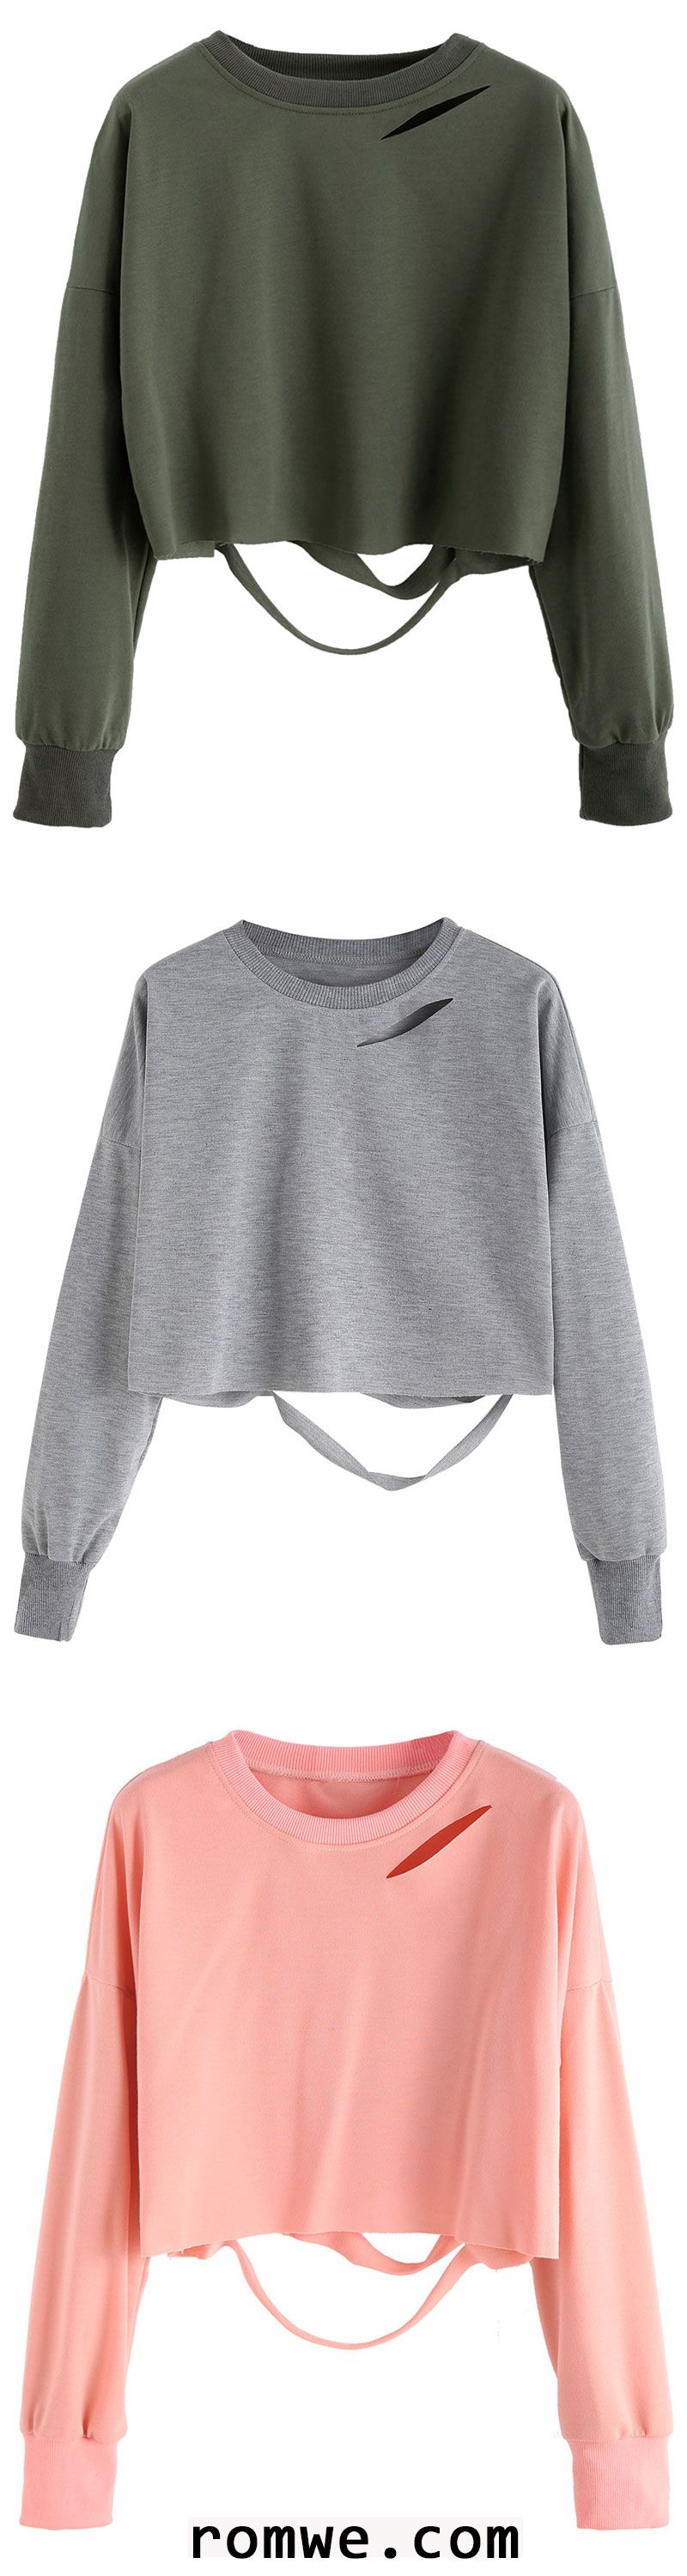 fc93dac0626bf Light Grey Drop Shoulder Cut Out Crop T-shirt in 2019